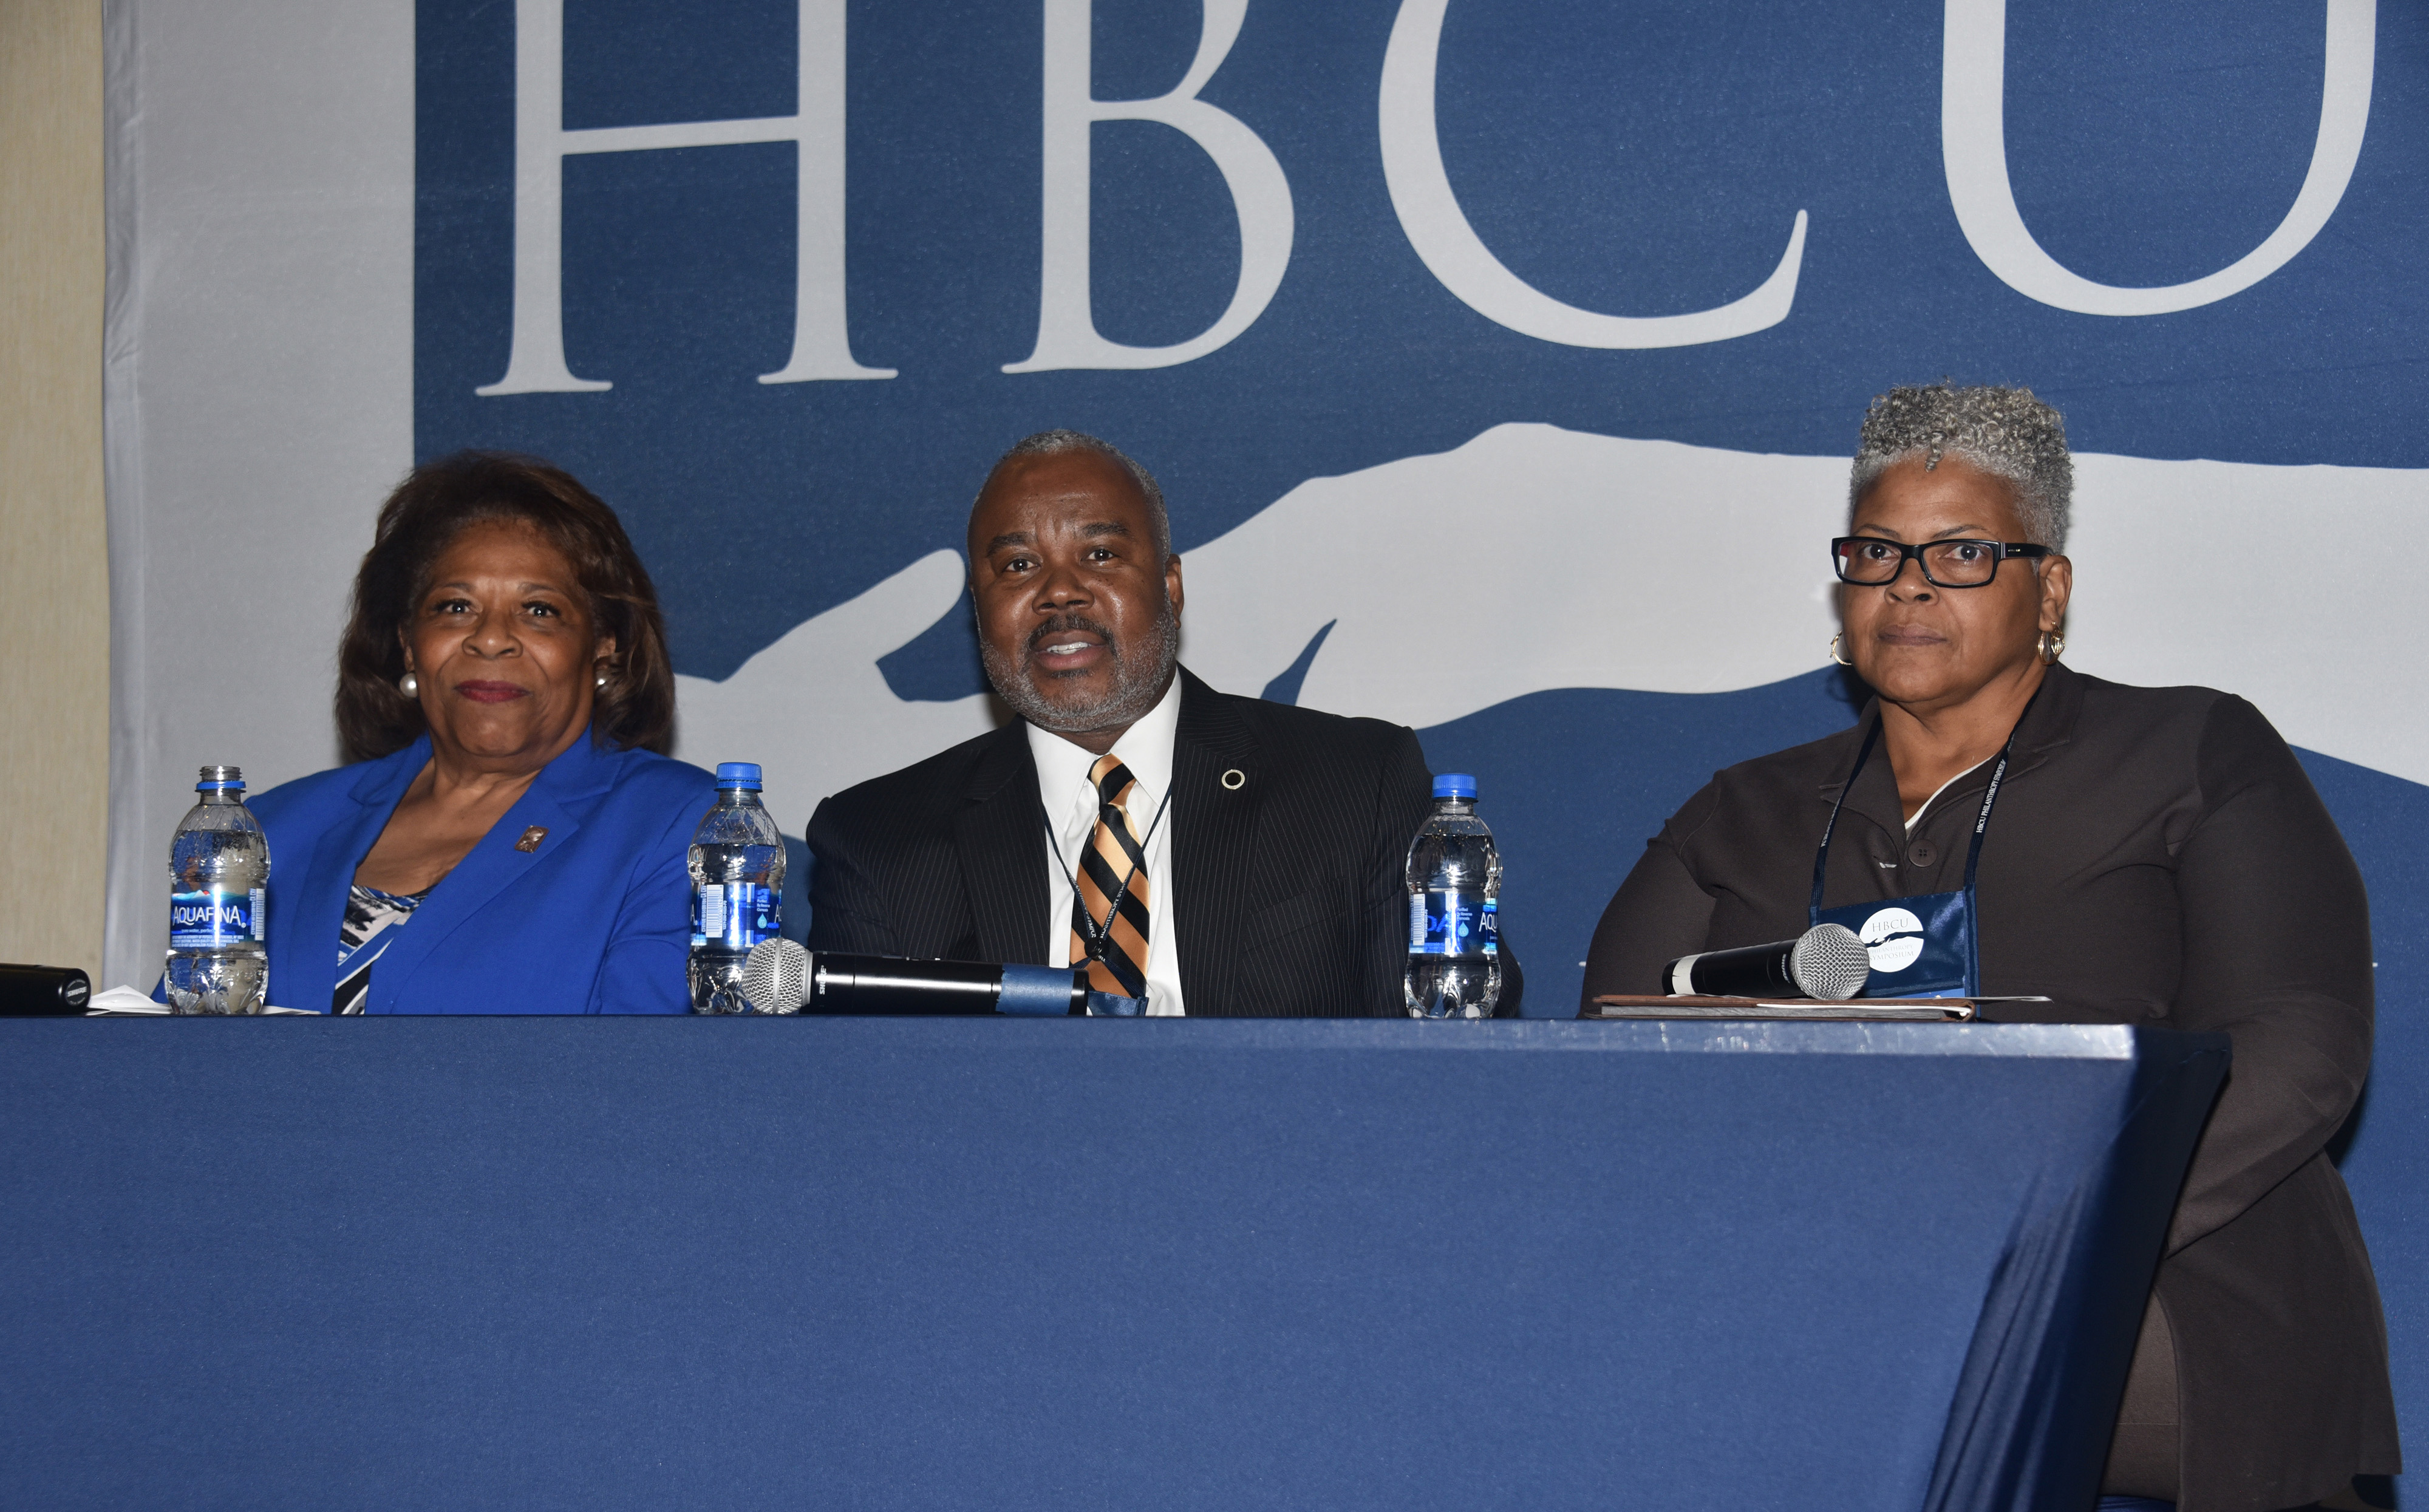 Three HBCU presidents -- (l-r) Delaware State University's Dr. Wilma Mishoe, Alabama State University's Dr. Quinton T. Ross Jr., and Lincoln (Pa.) University's Dr. Brenda Allen -- shared their thoughts from the top on the fundraising challenges facing HBCUs and the role of institutional advancement professionals in overcoming them.